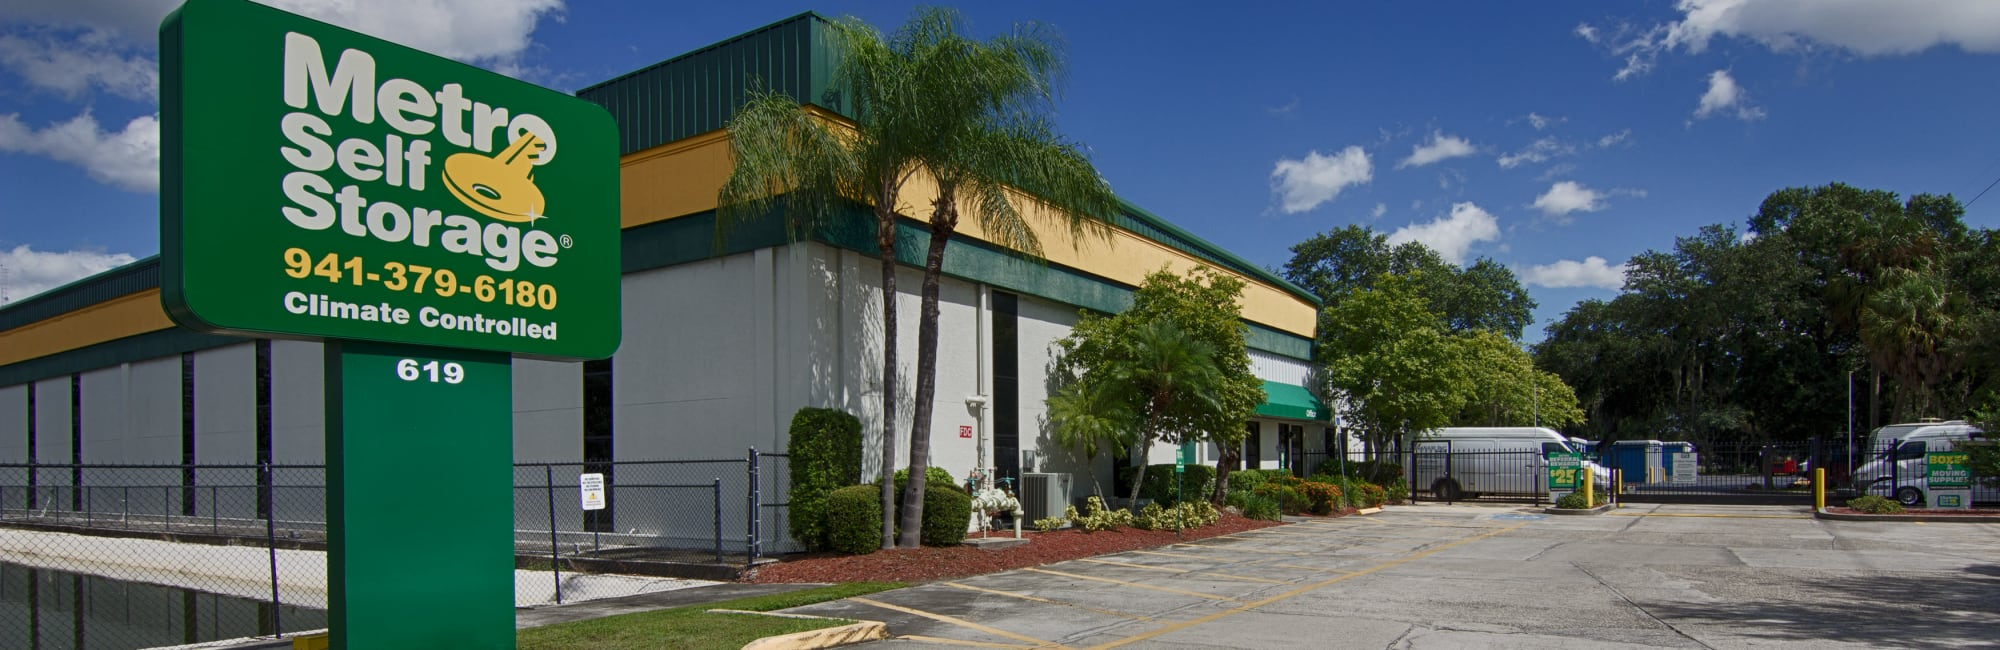 Metro Self Storage in Sarasota, FL